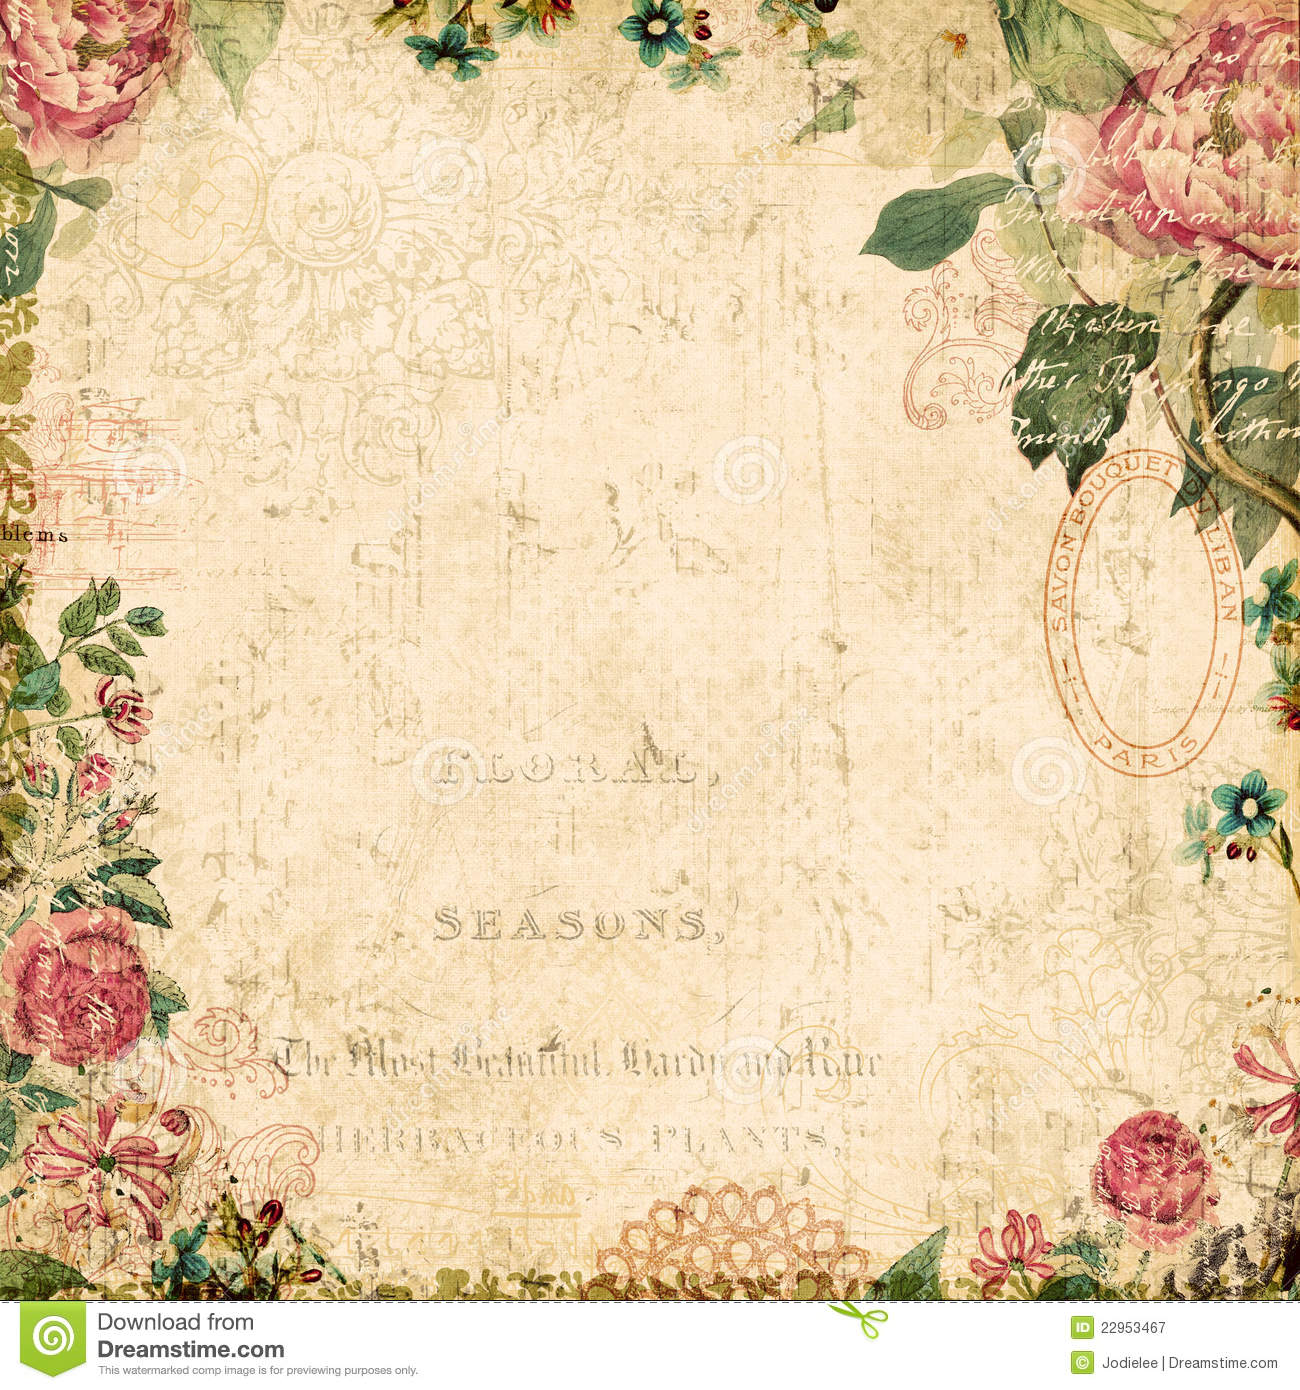 Http Www Dreamstime Com Royalty Free Stock Photography Vintage Style Botanical Floral Framed Background Image22953467